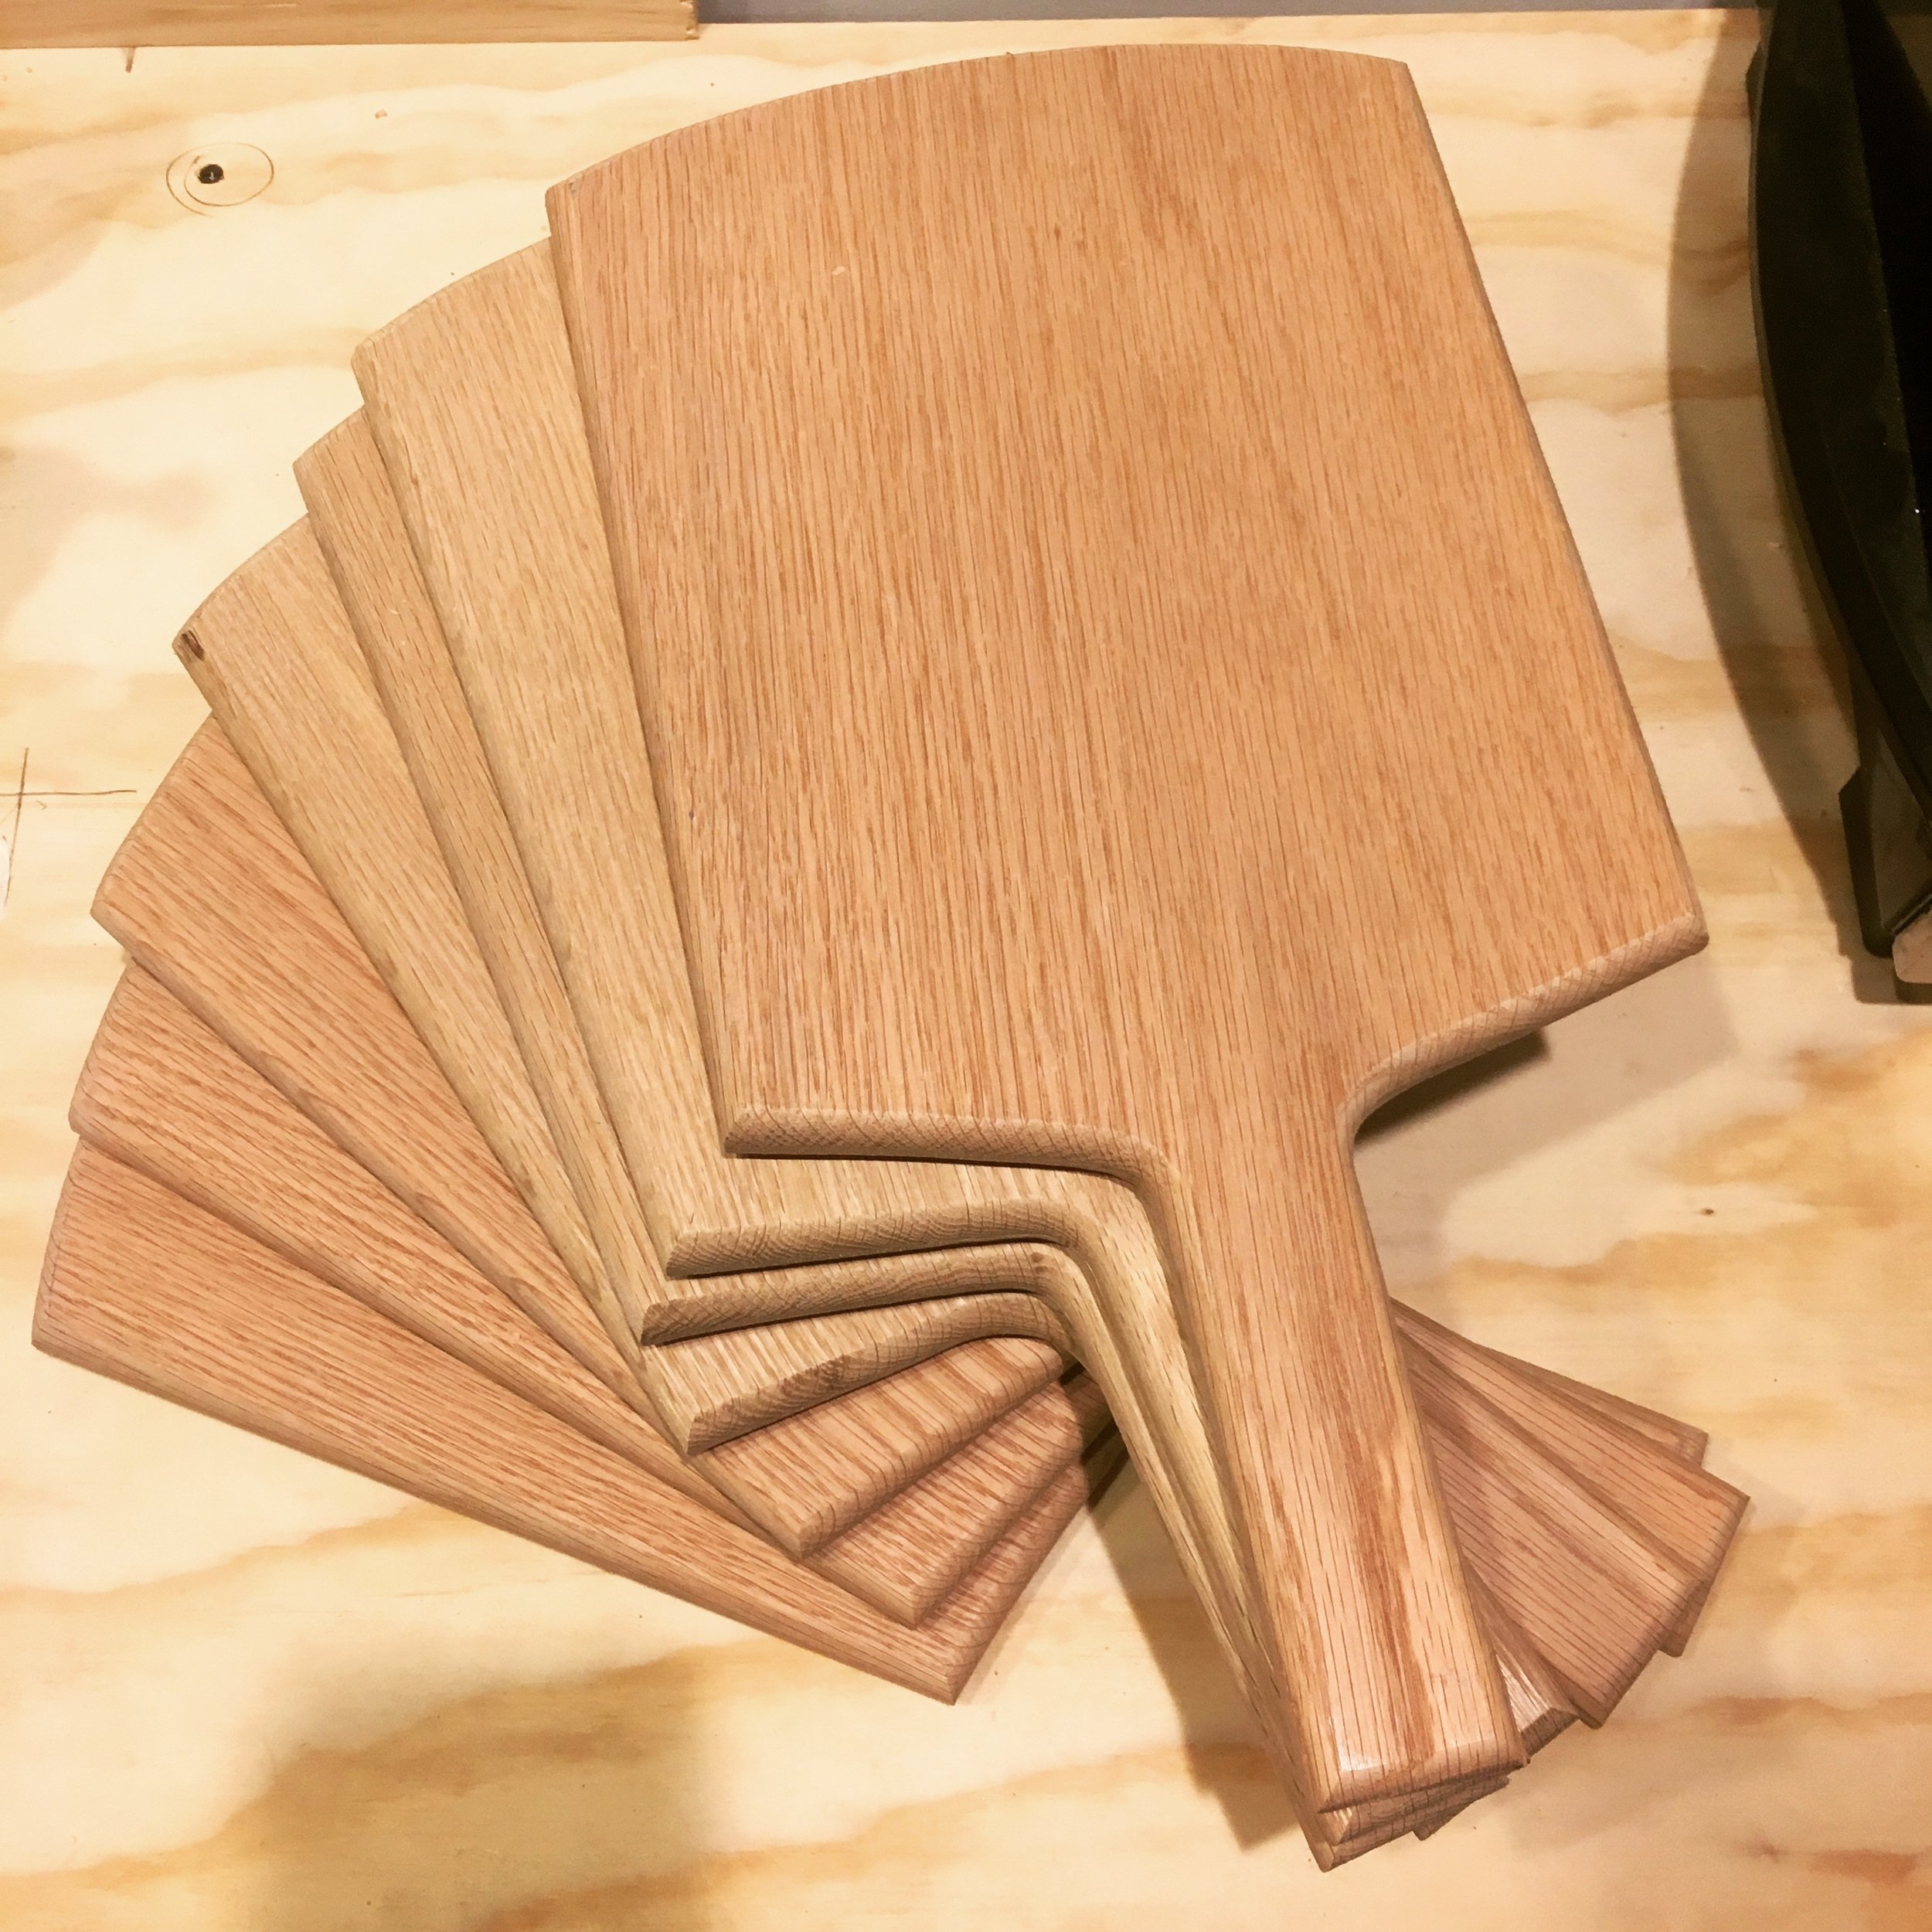 Restaurant reving boards.JPG